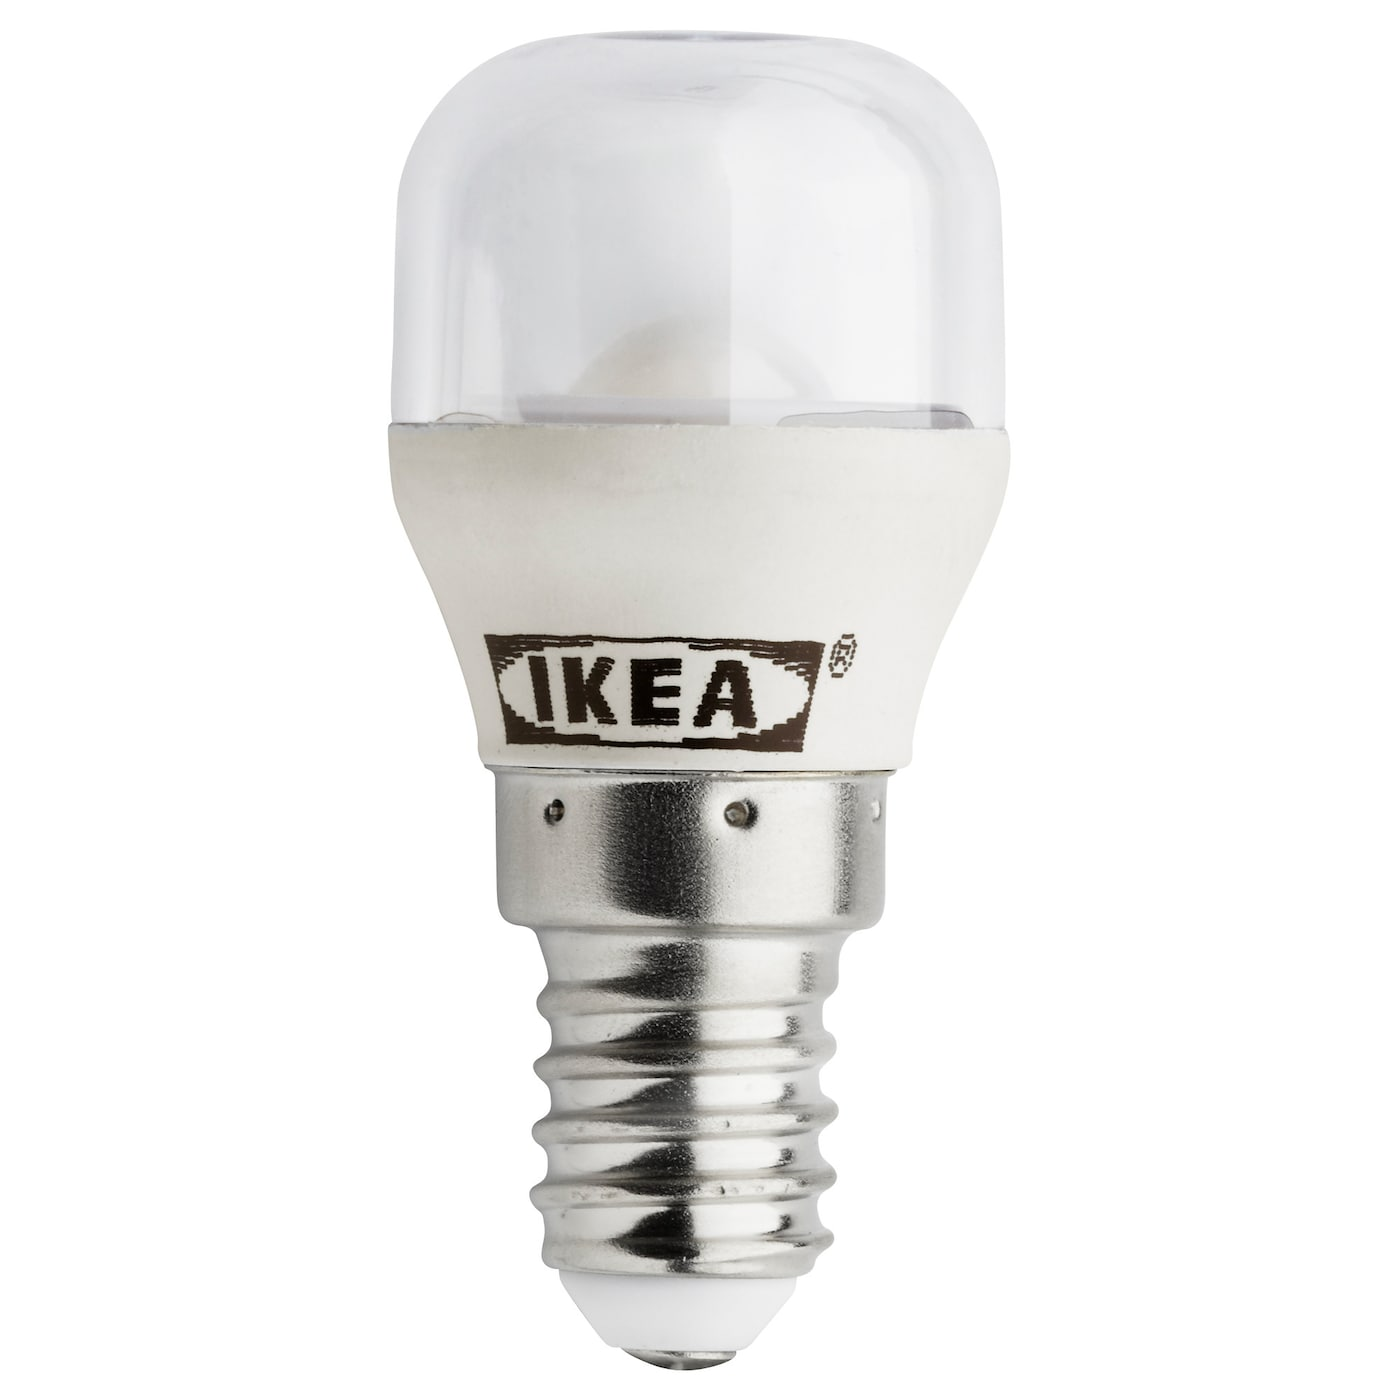 LED Bulbs & LED Light Bulbs  IKEA